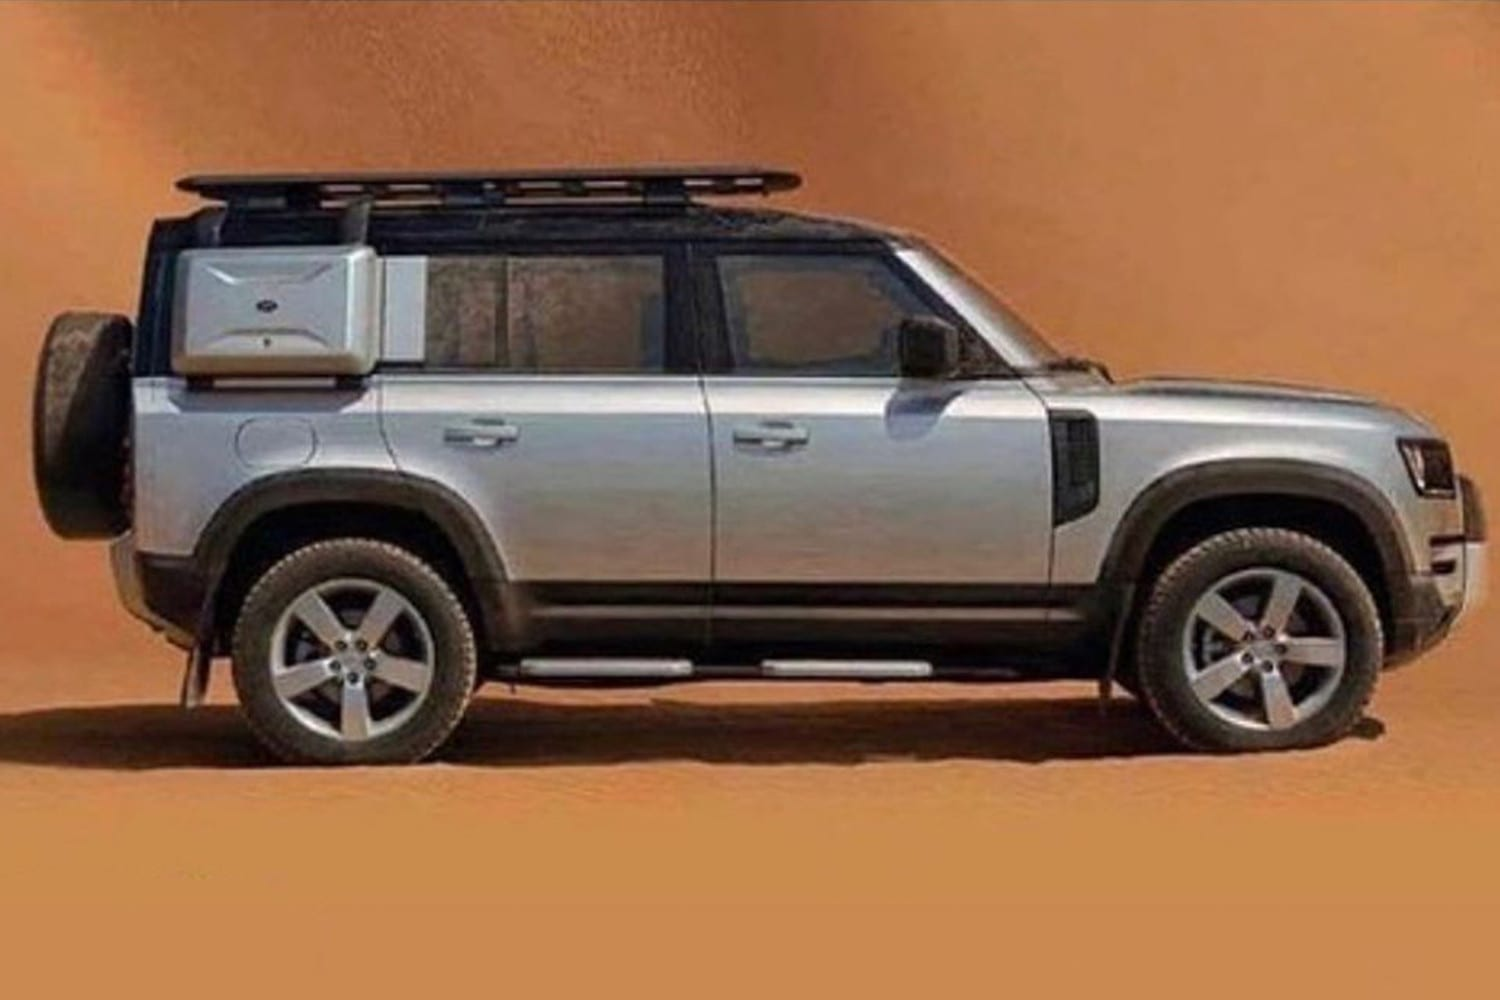 2020 Land Rover Defender – Country Pack + Explorer Pack + Adventure Pack